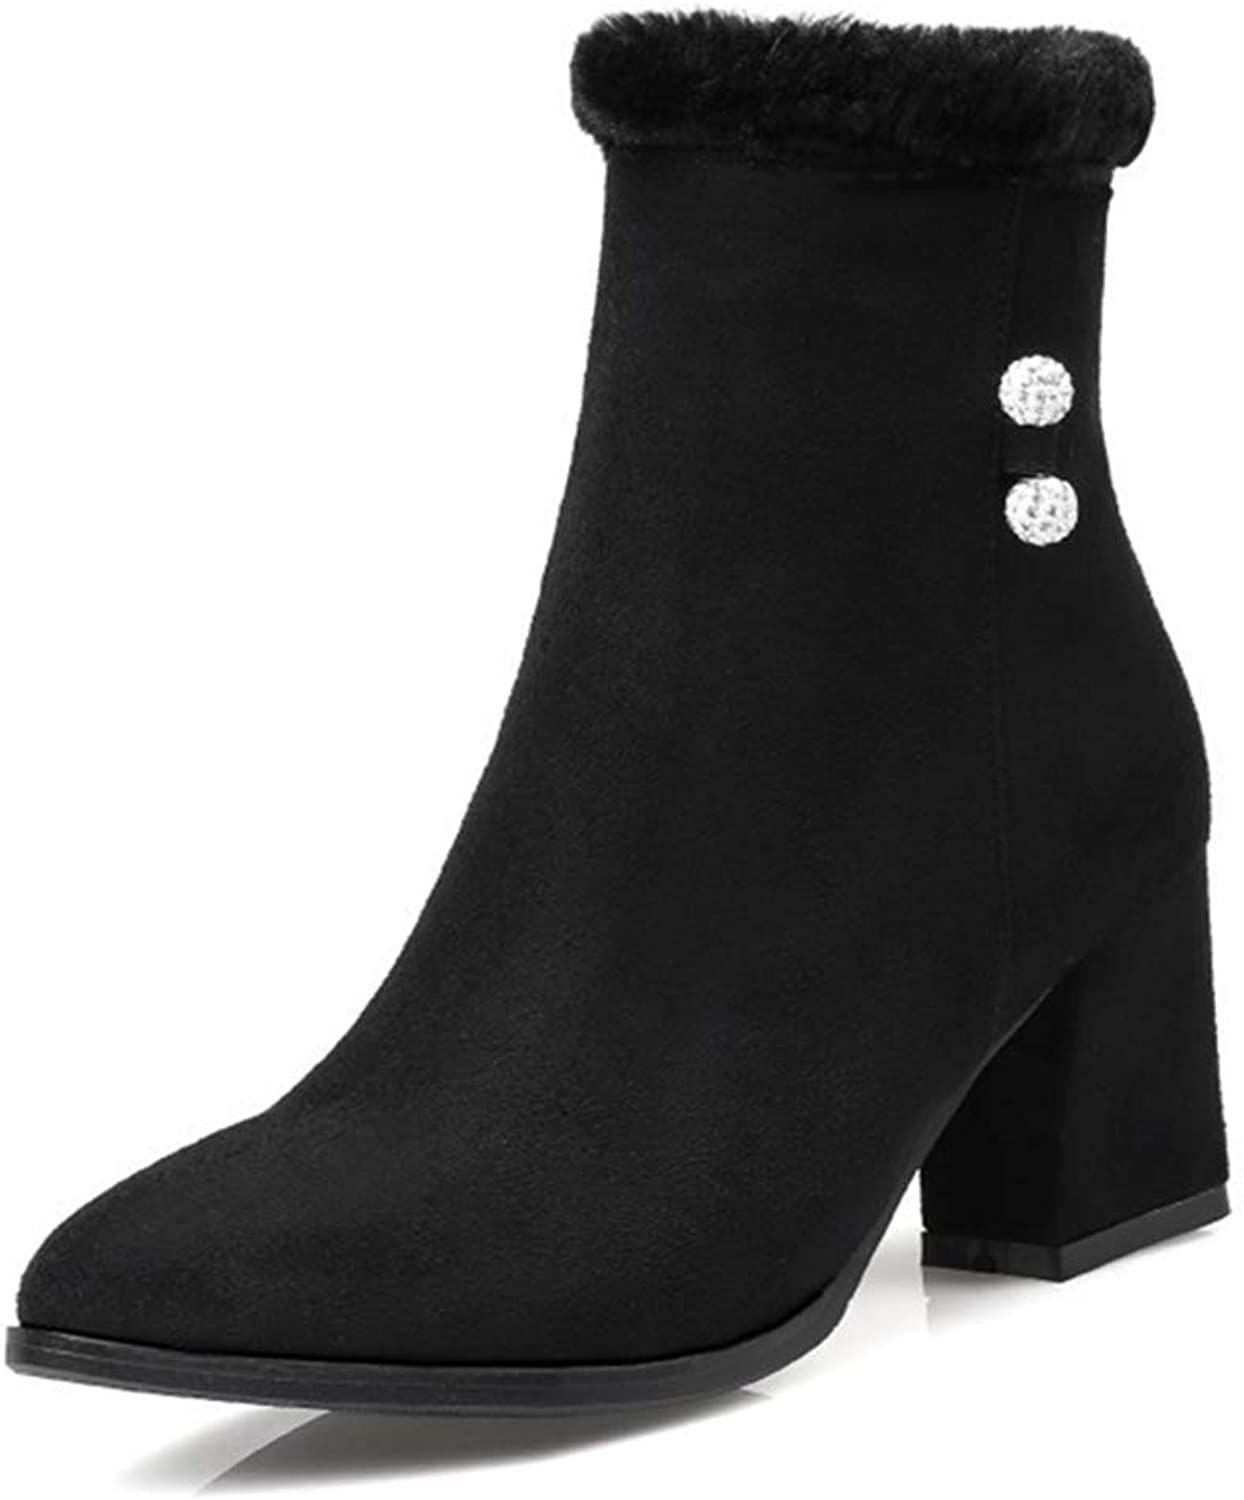 Beautiful - Fashion Women's Suede Ankle Boots Comfort Round Toe Side Zipper Block Heel Slip-on Winter Ankle High Western Snow Boots